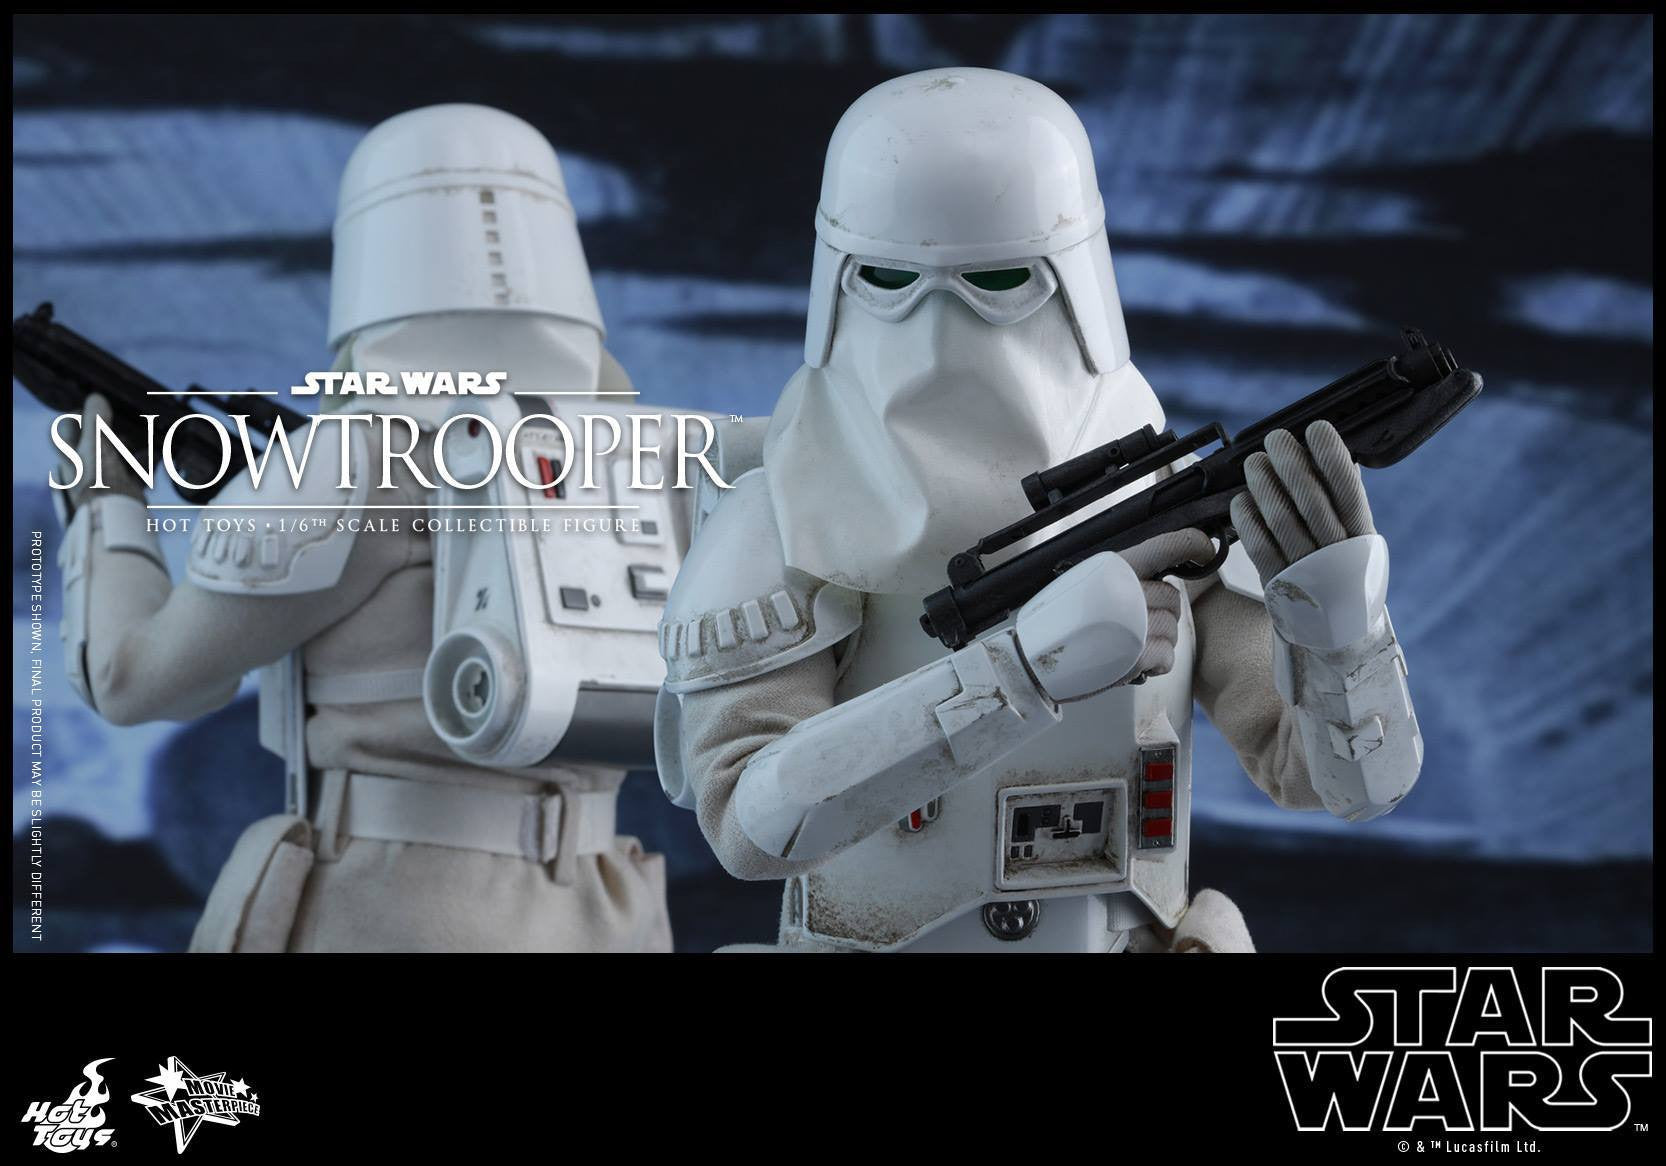 Hot Toys - MMS397 - Star Wars Episode V: The Empire Strikes Back - Snowtrooper - Marvelous Toys - 9